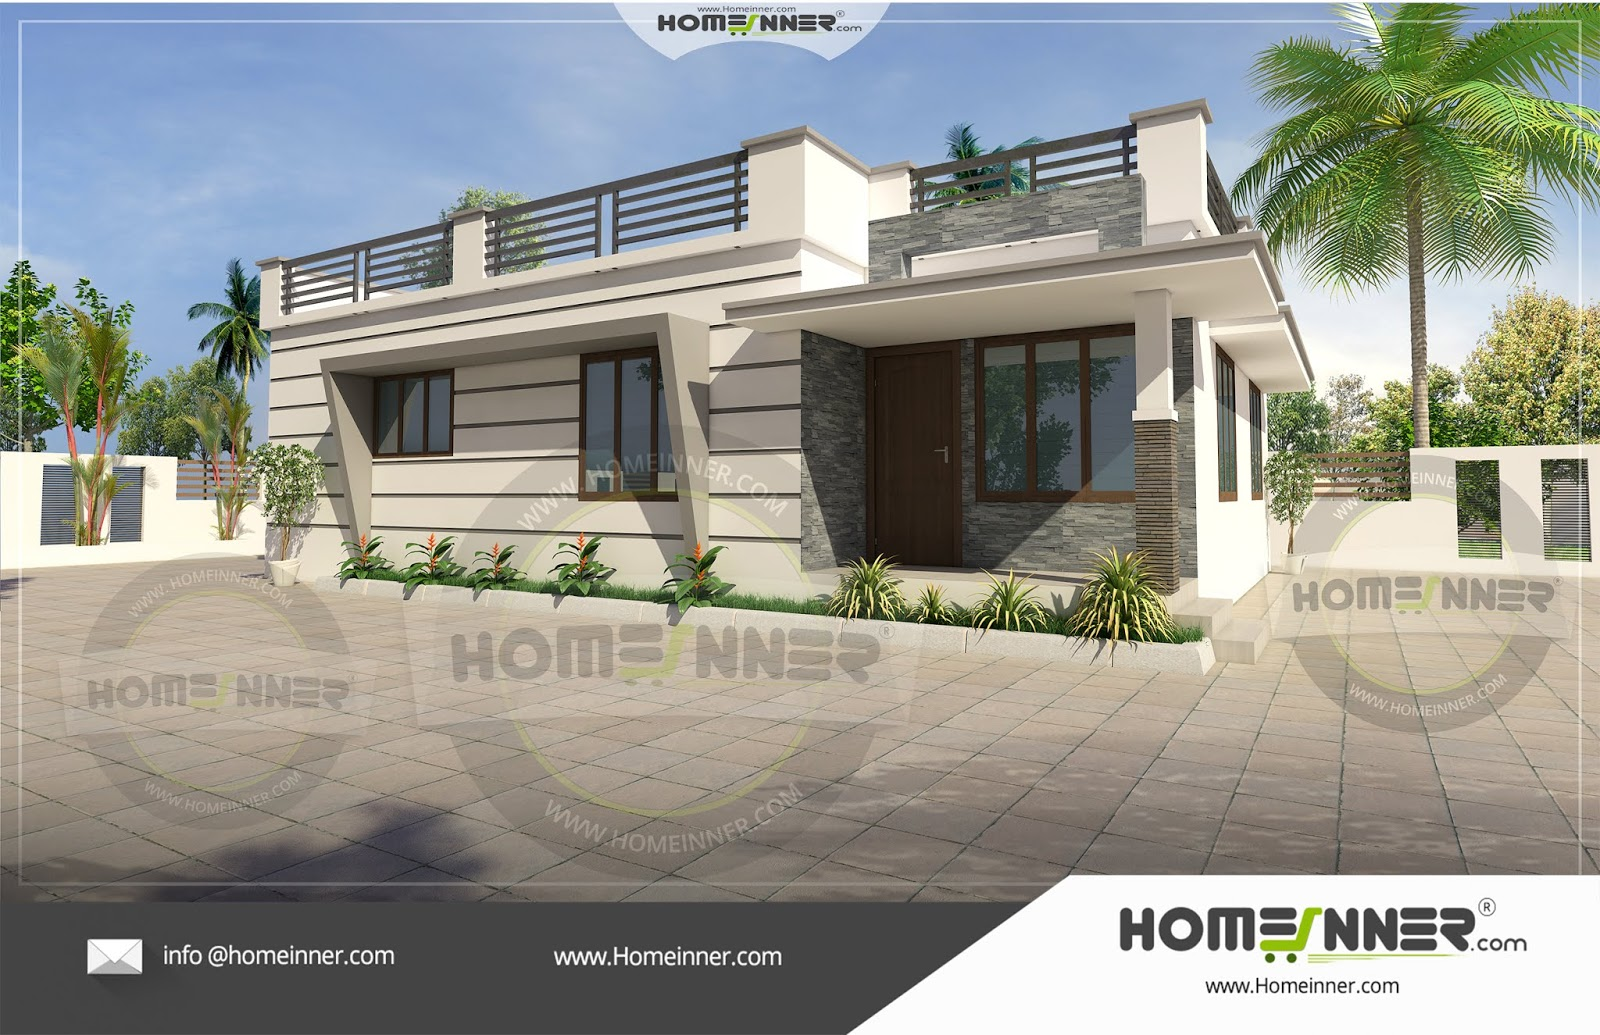 10 Lakh 3bhk 1100 Sq Ft Kochi Villa Floor Plan